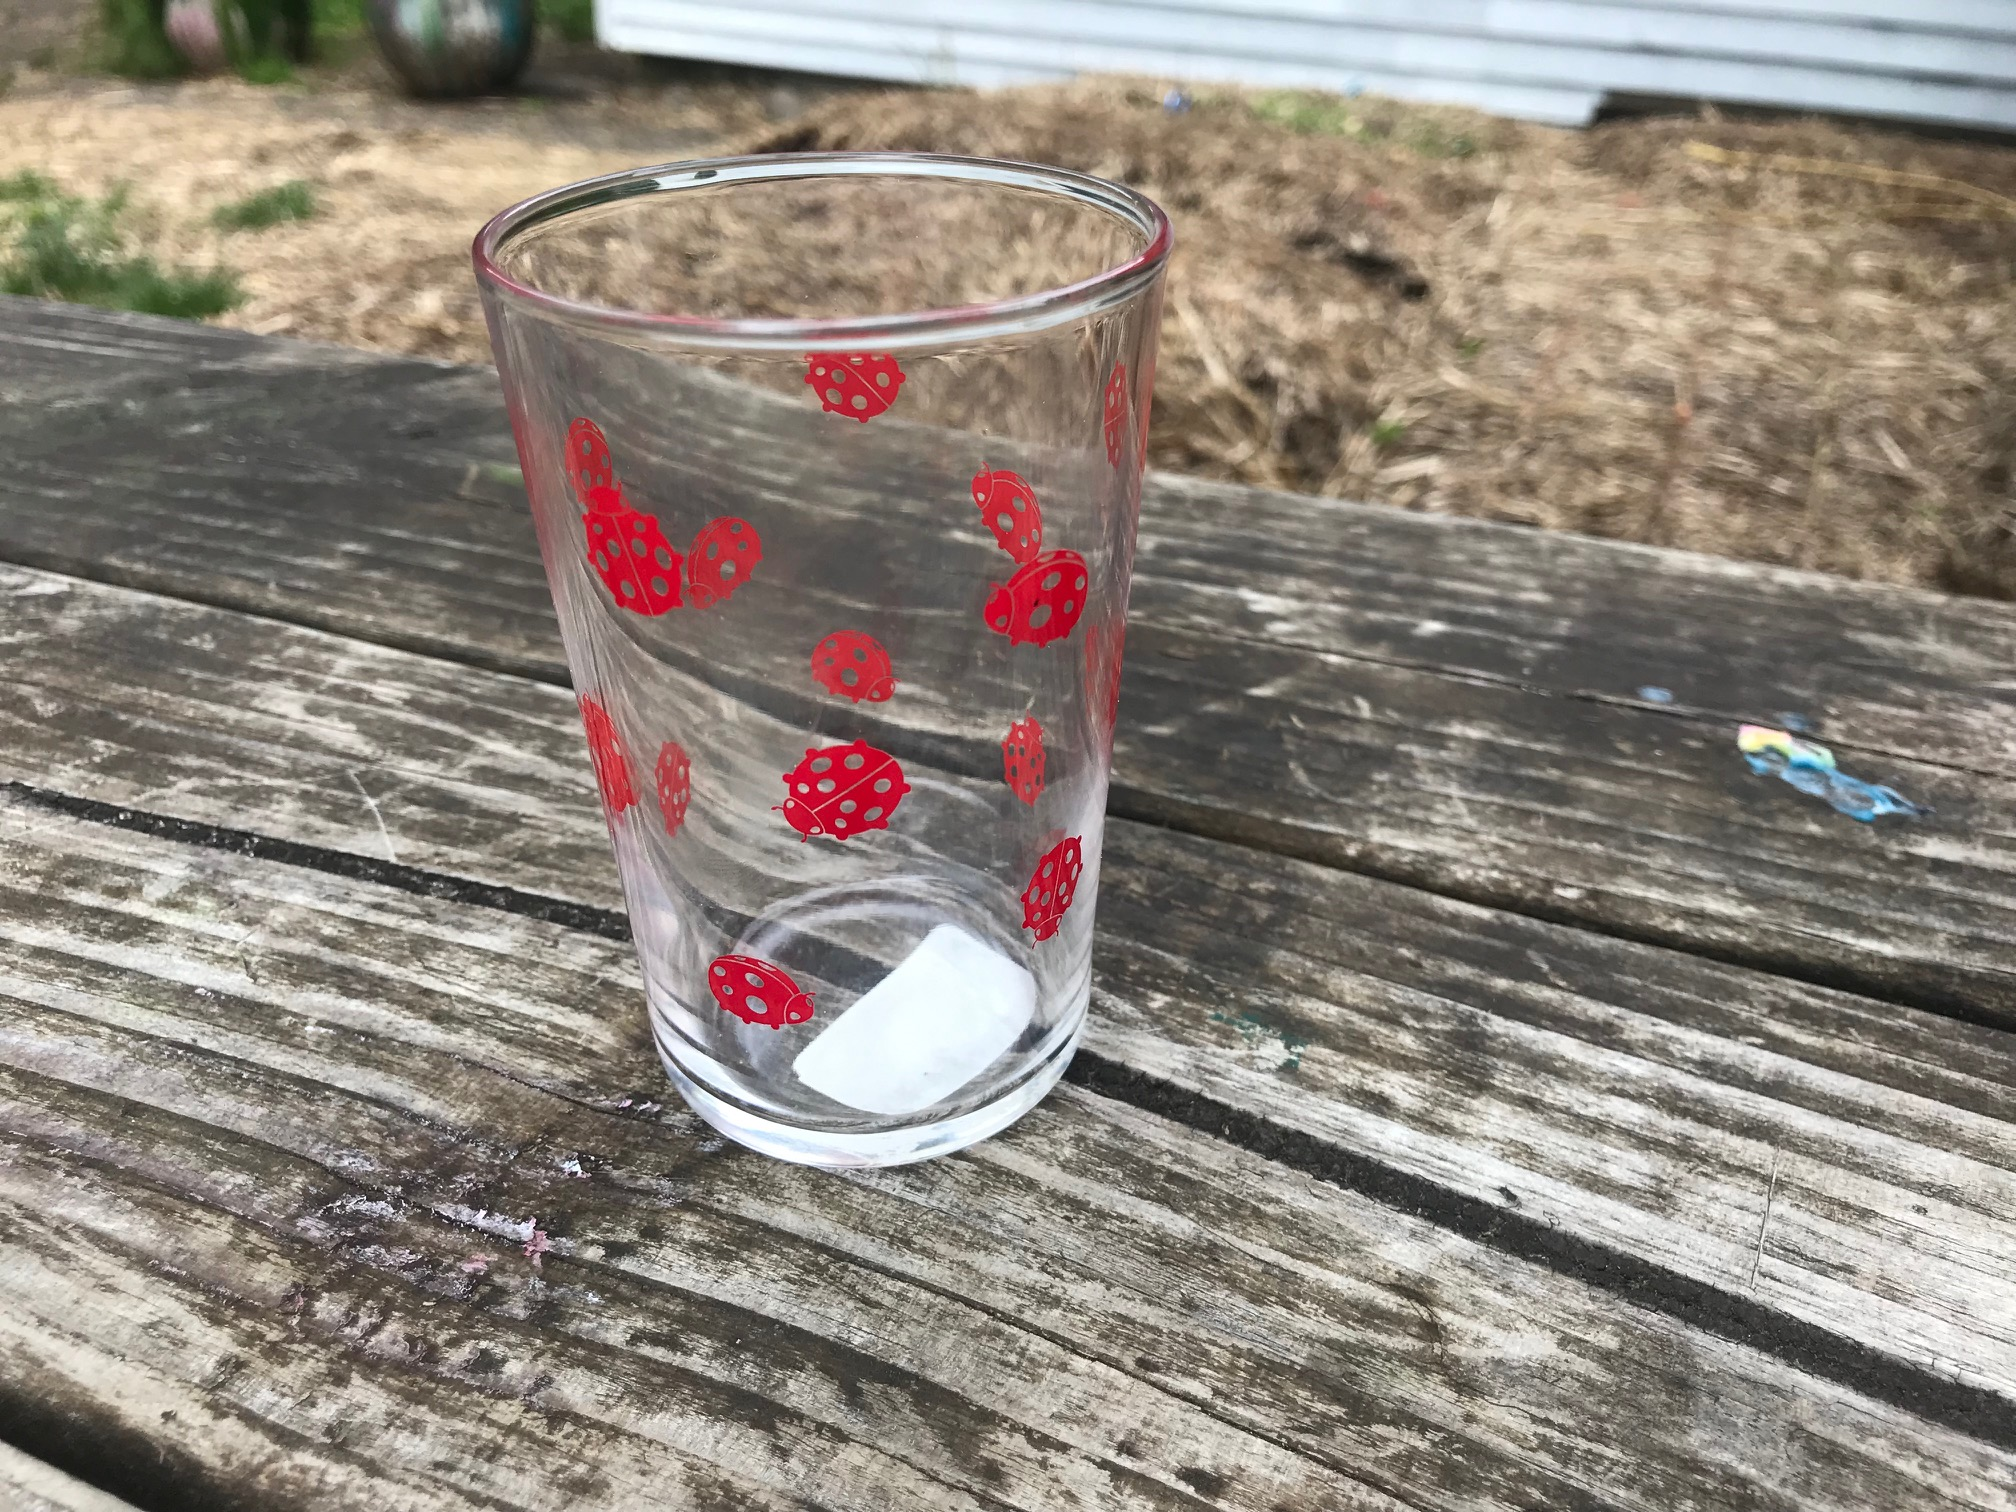 Clear Conique Luminarc 7 oz Ladybug Juice Glass - purchased at New Seasons Market in May of 2019